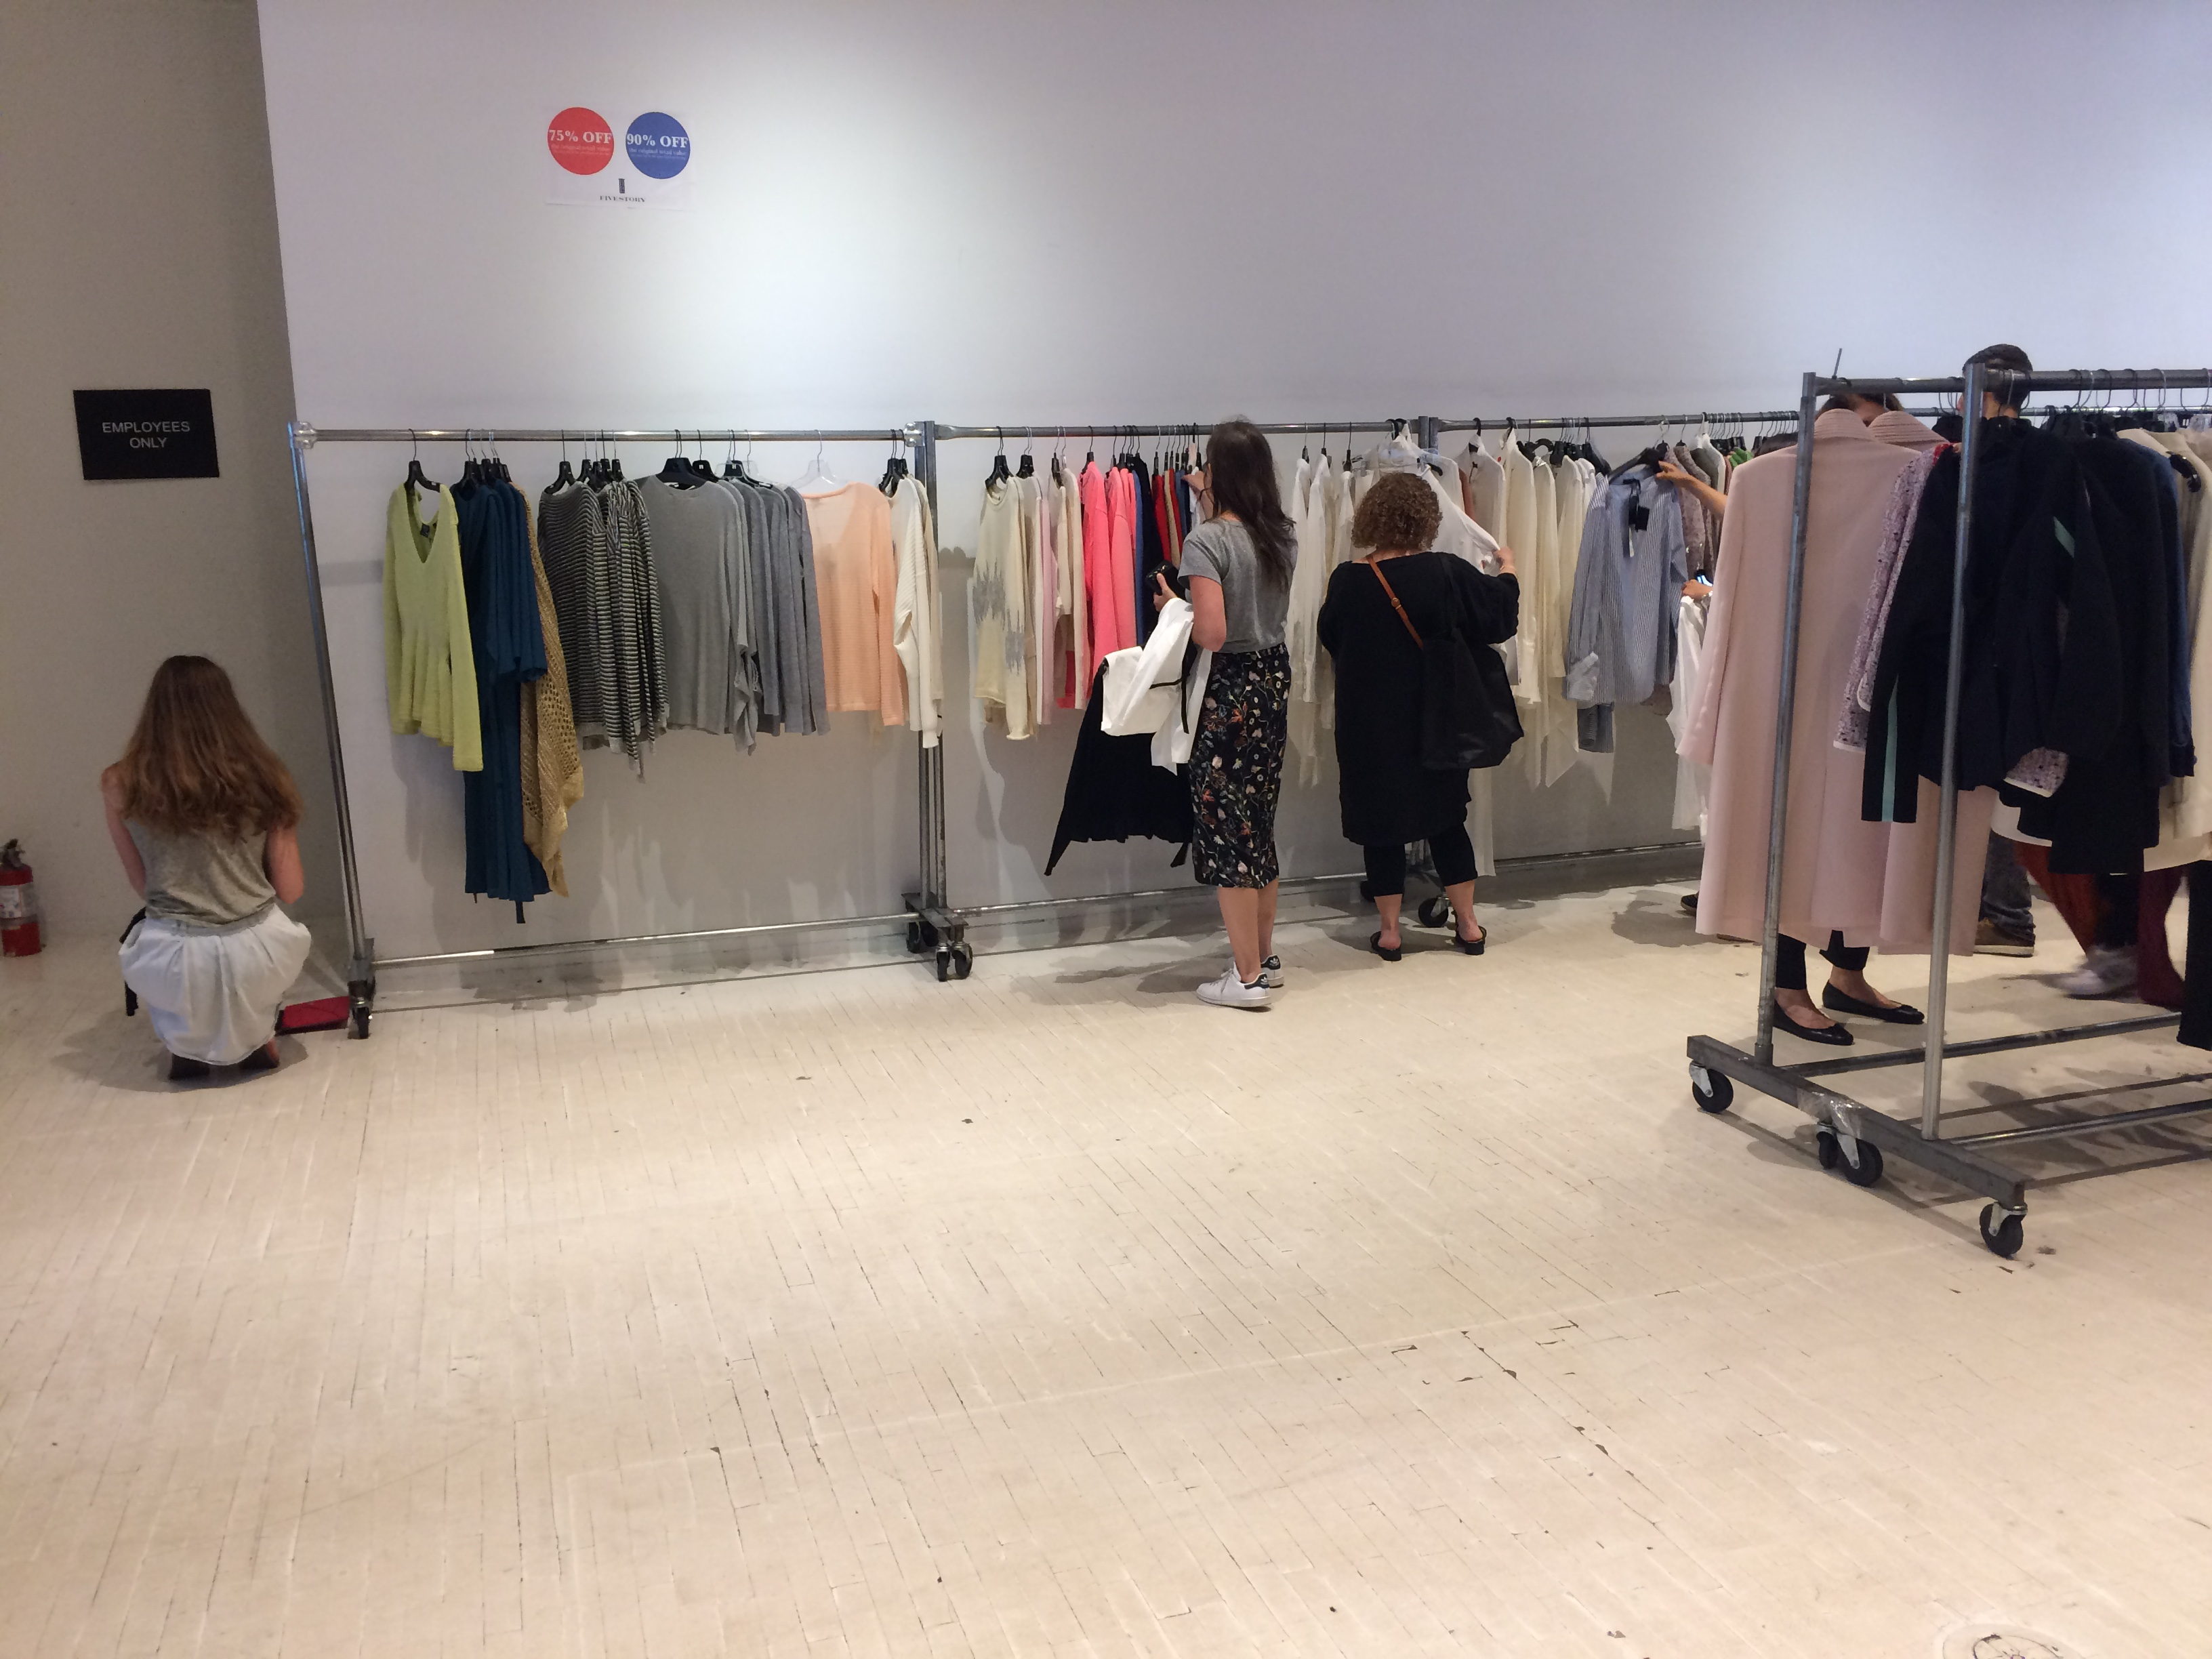 five story sample sale, sample sales new york, sample sales new york city, sample sales ny